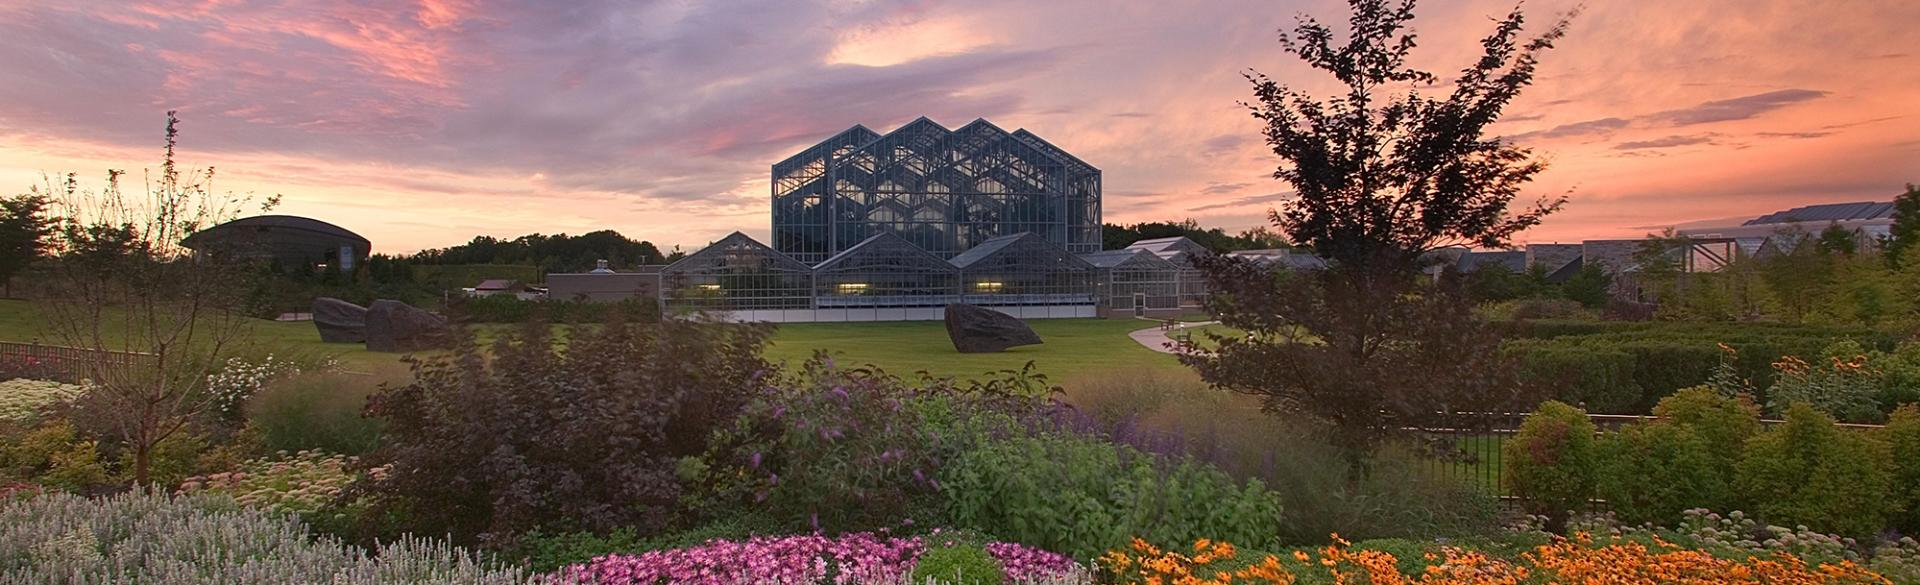 Sunset over Meijer Gardens at sunset in Grand Rapids, Michigan